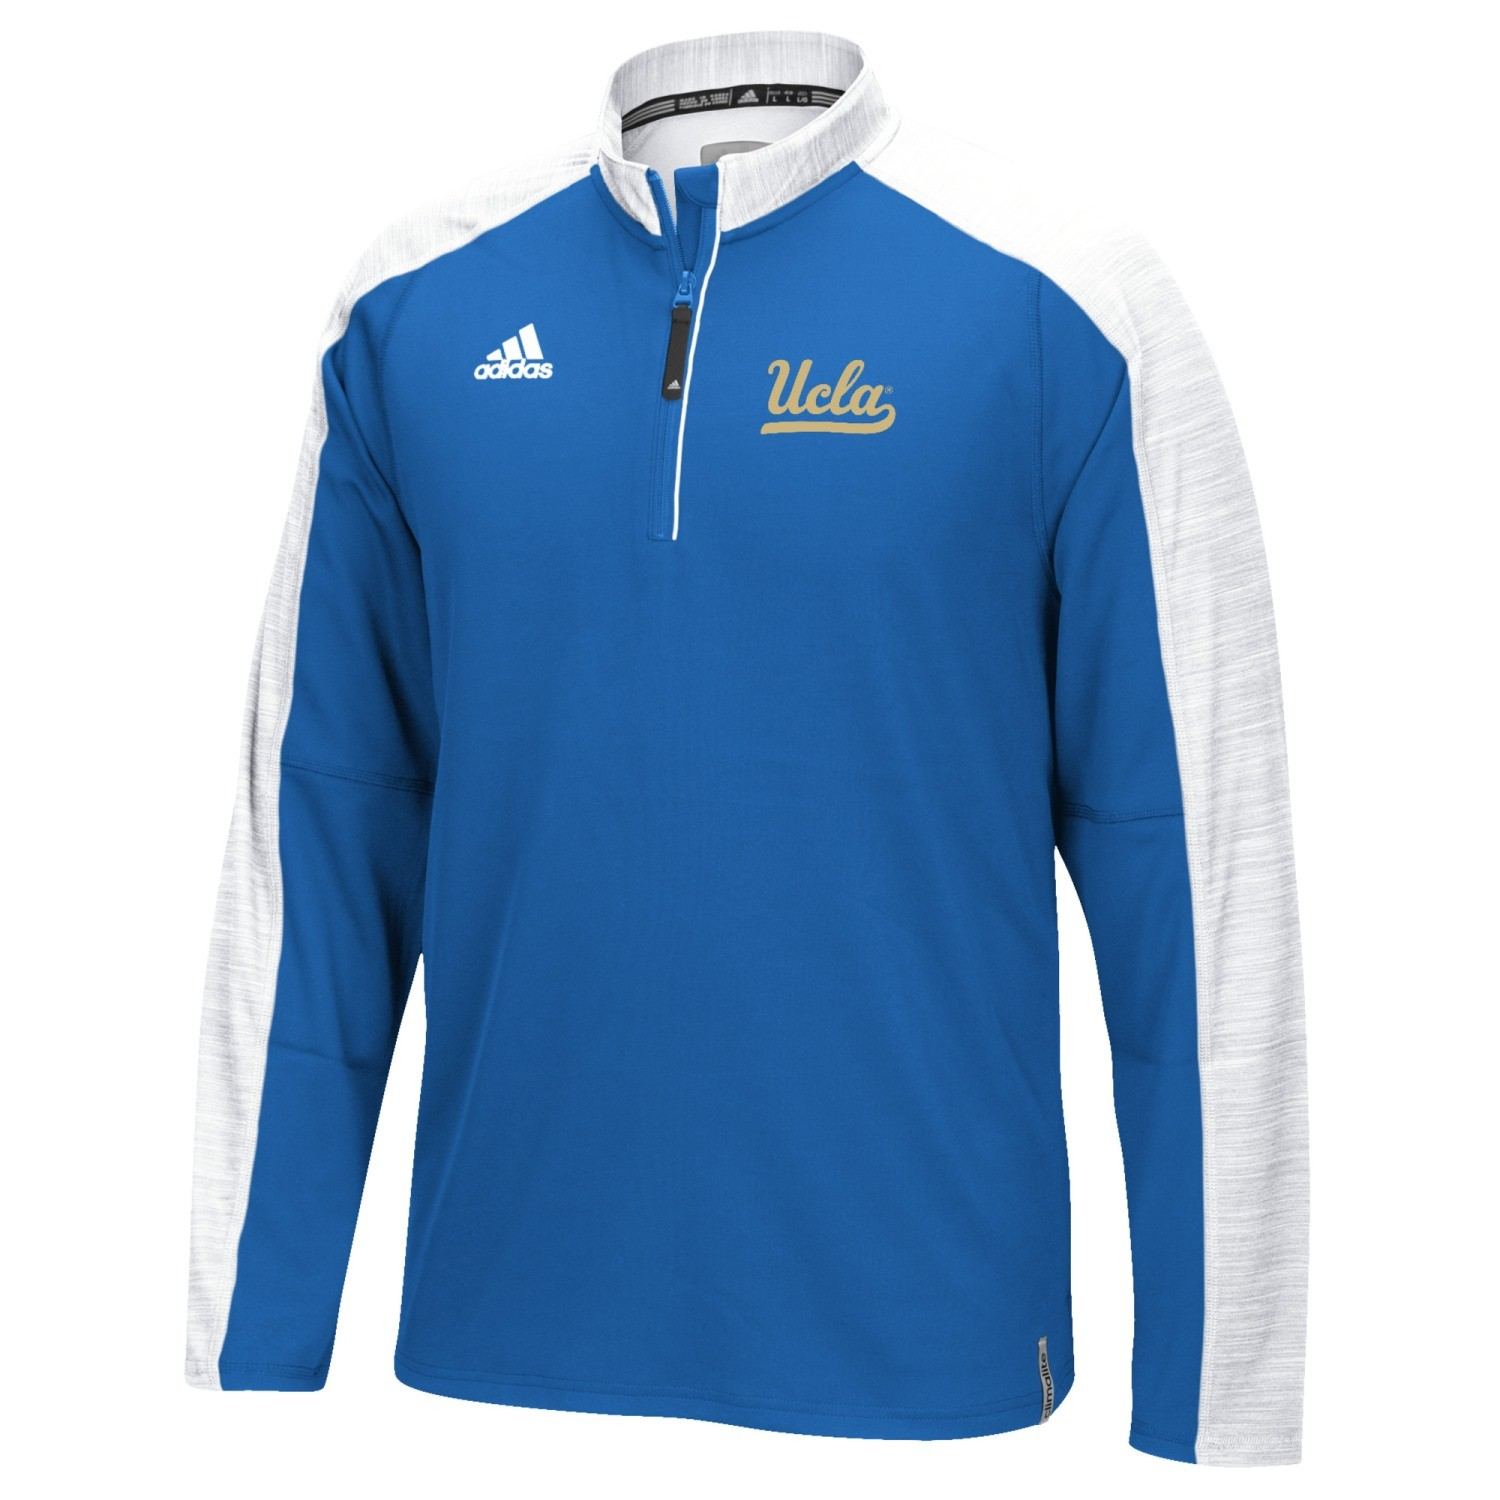 UCLA Bruins adidas 2016 Football Coaches 1//4 Zip Jacket White